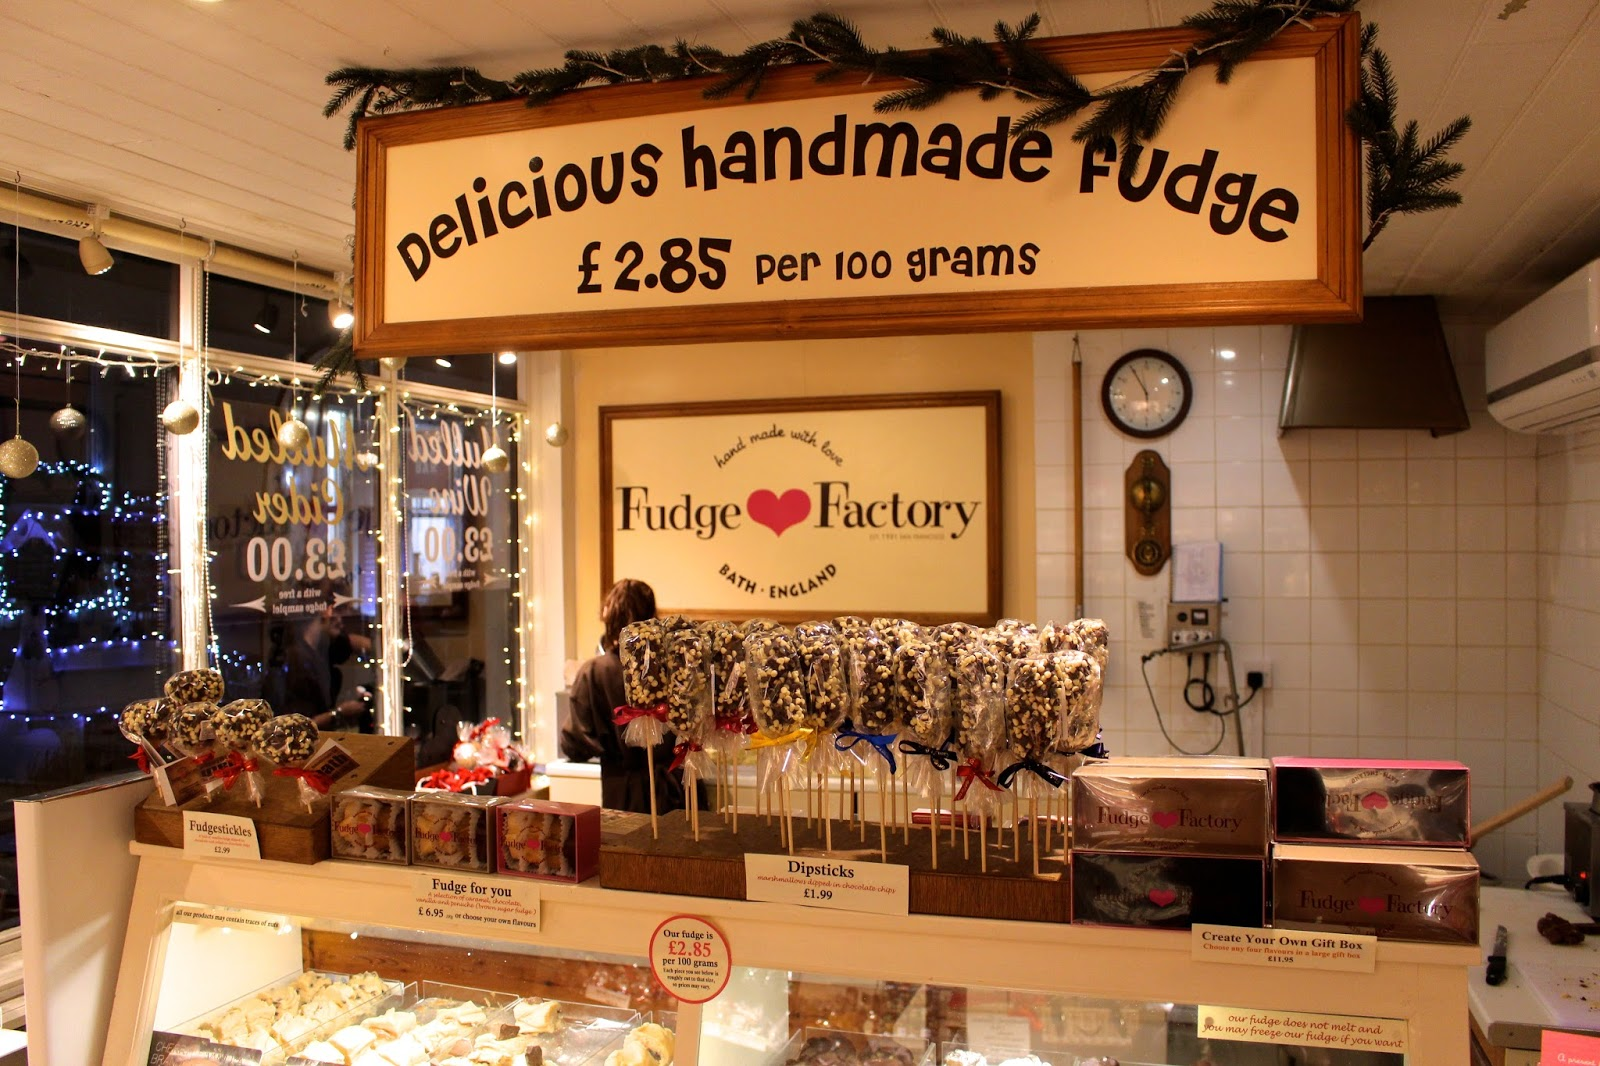 The Fudge Factory Bath